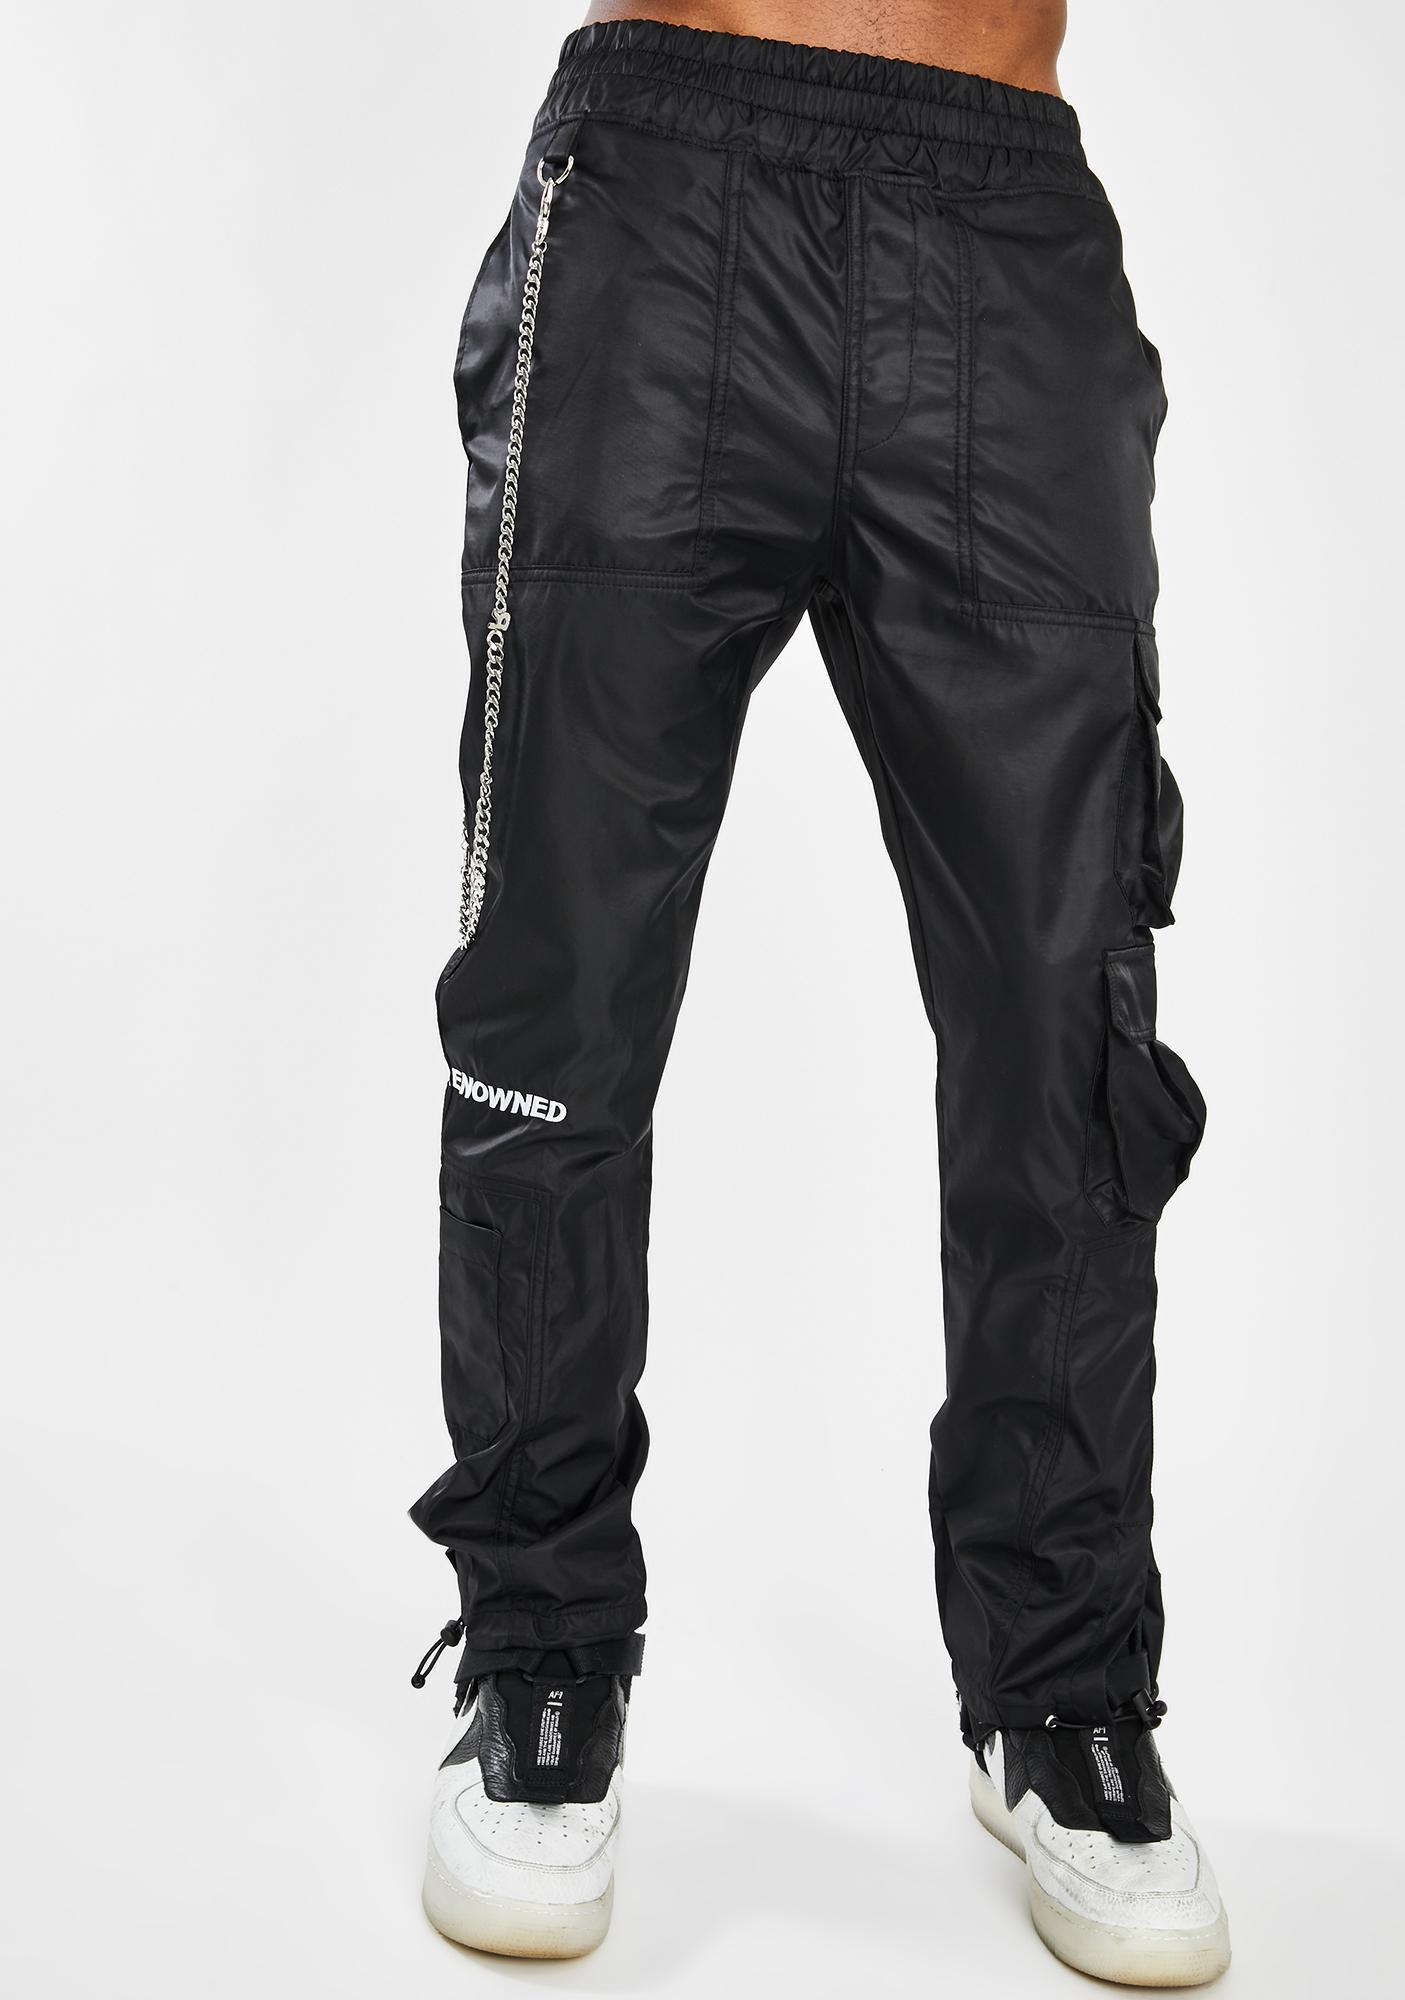 Renowned LA Chain Tactical Cargo Pants